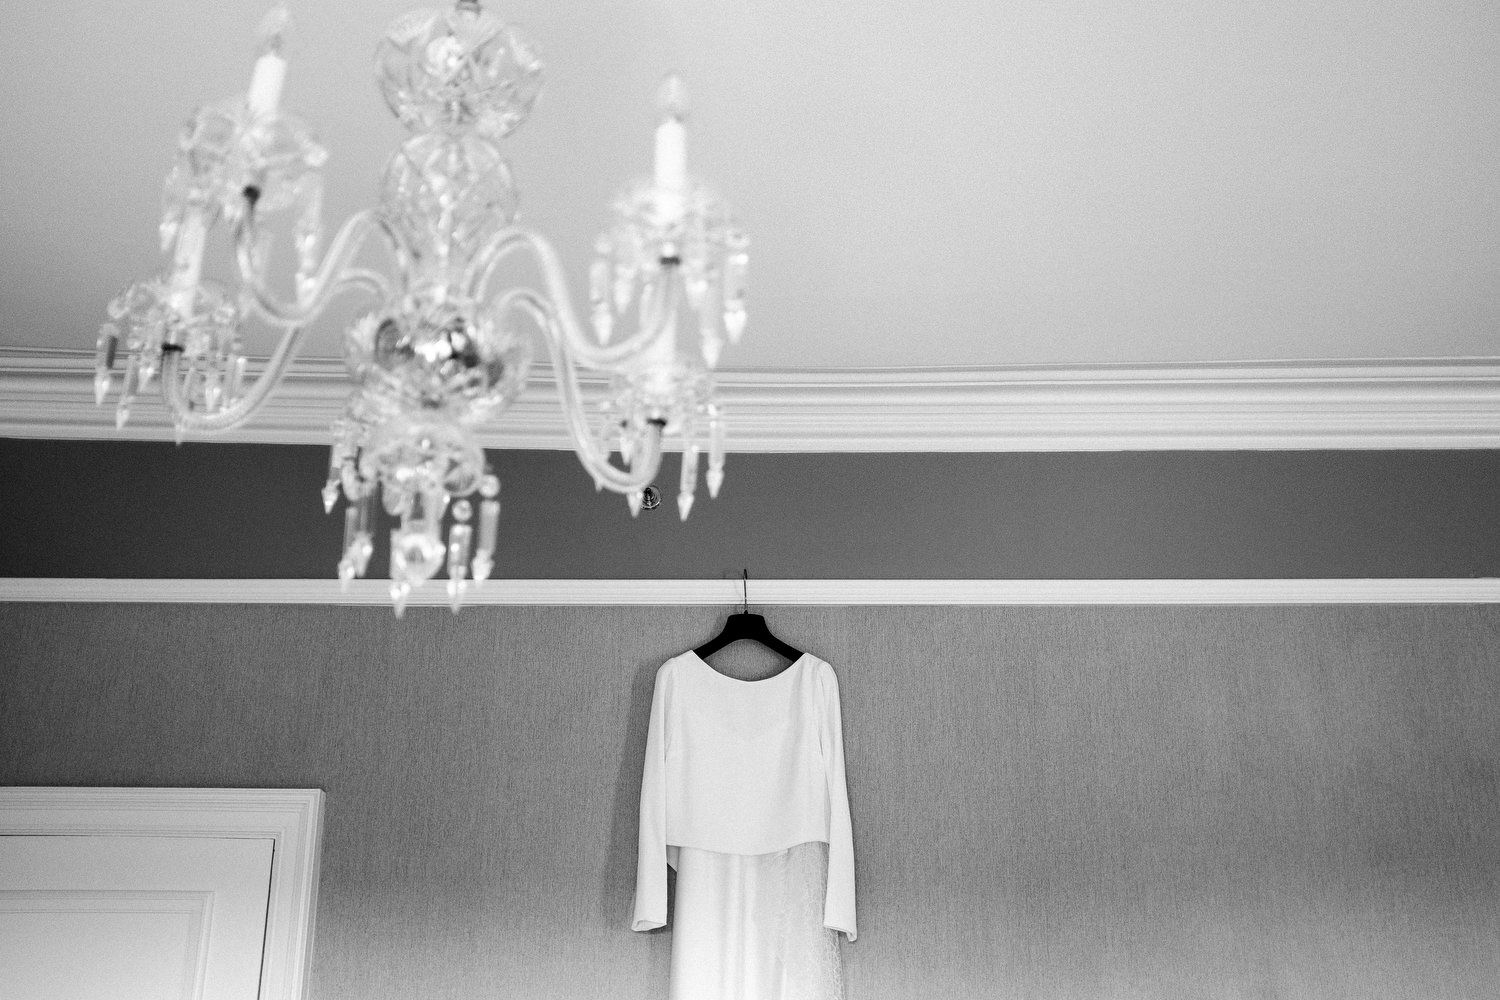 dmp0123_preparation_photographer_dublin_david_mcclelland_photography_shelbourne_documentary_wedding